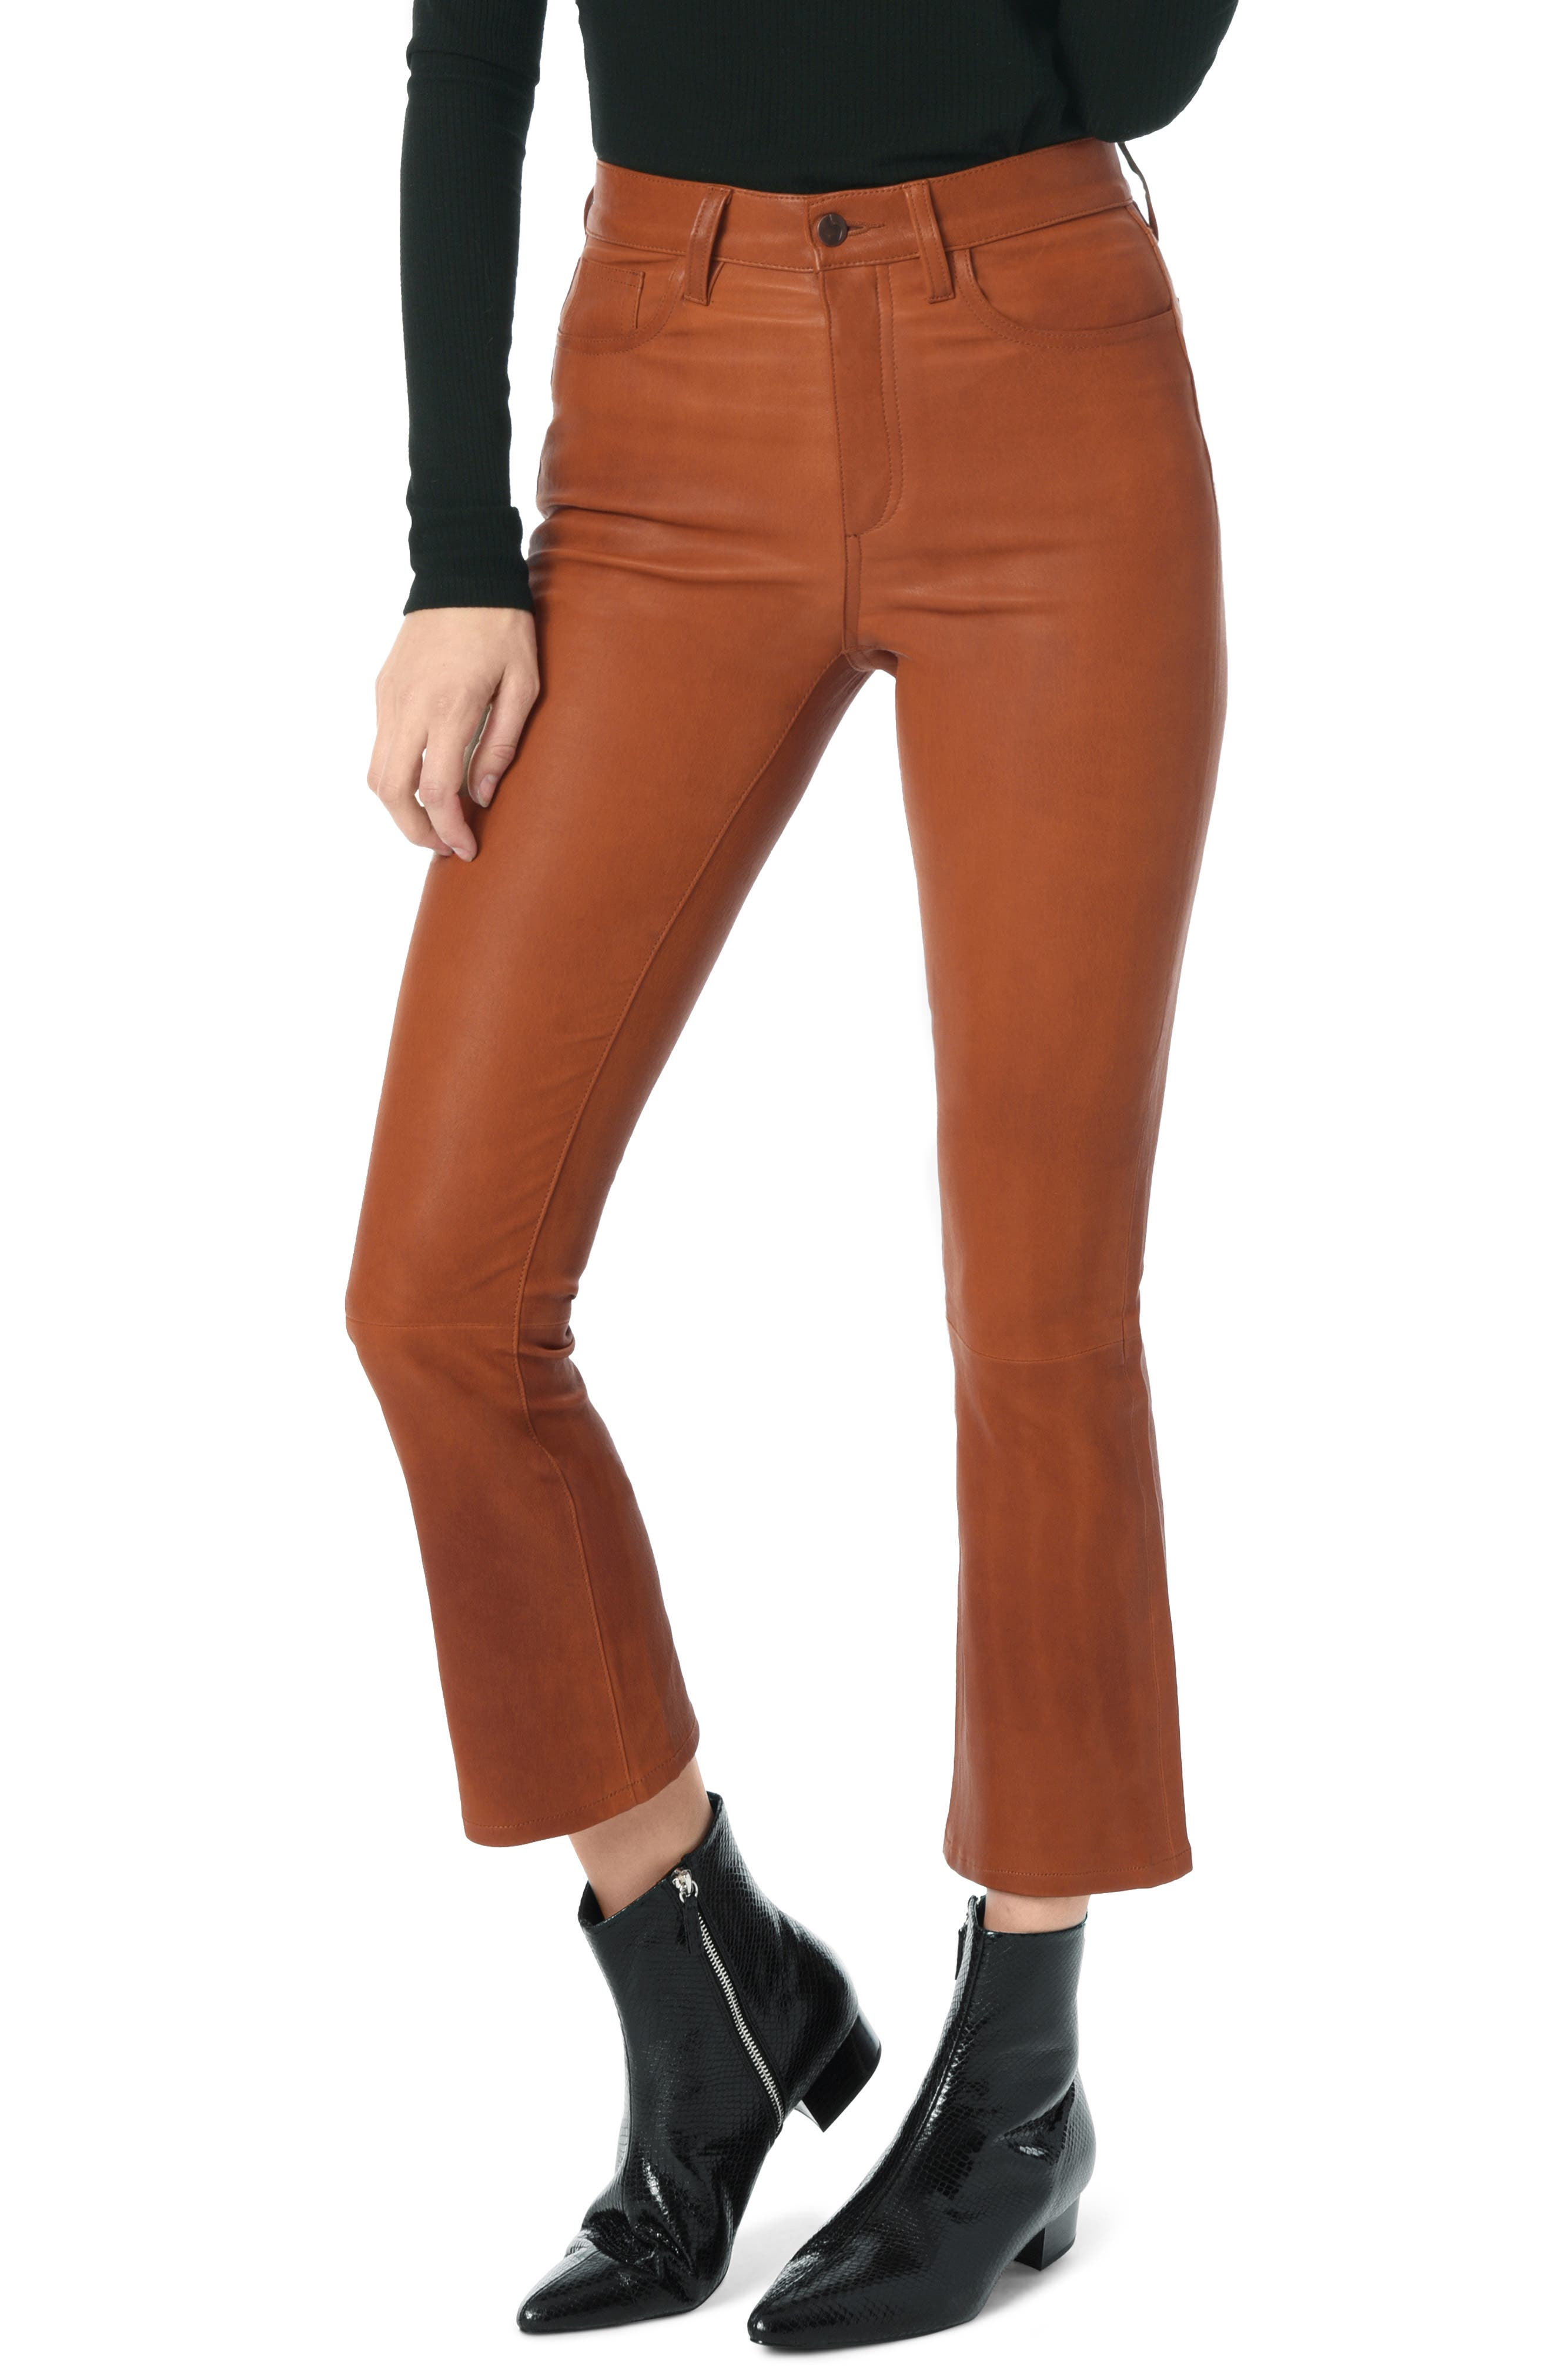 JOE'S JEANS The Cropped Skinny Boot-Cut Leather Jeans in Cognac